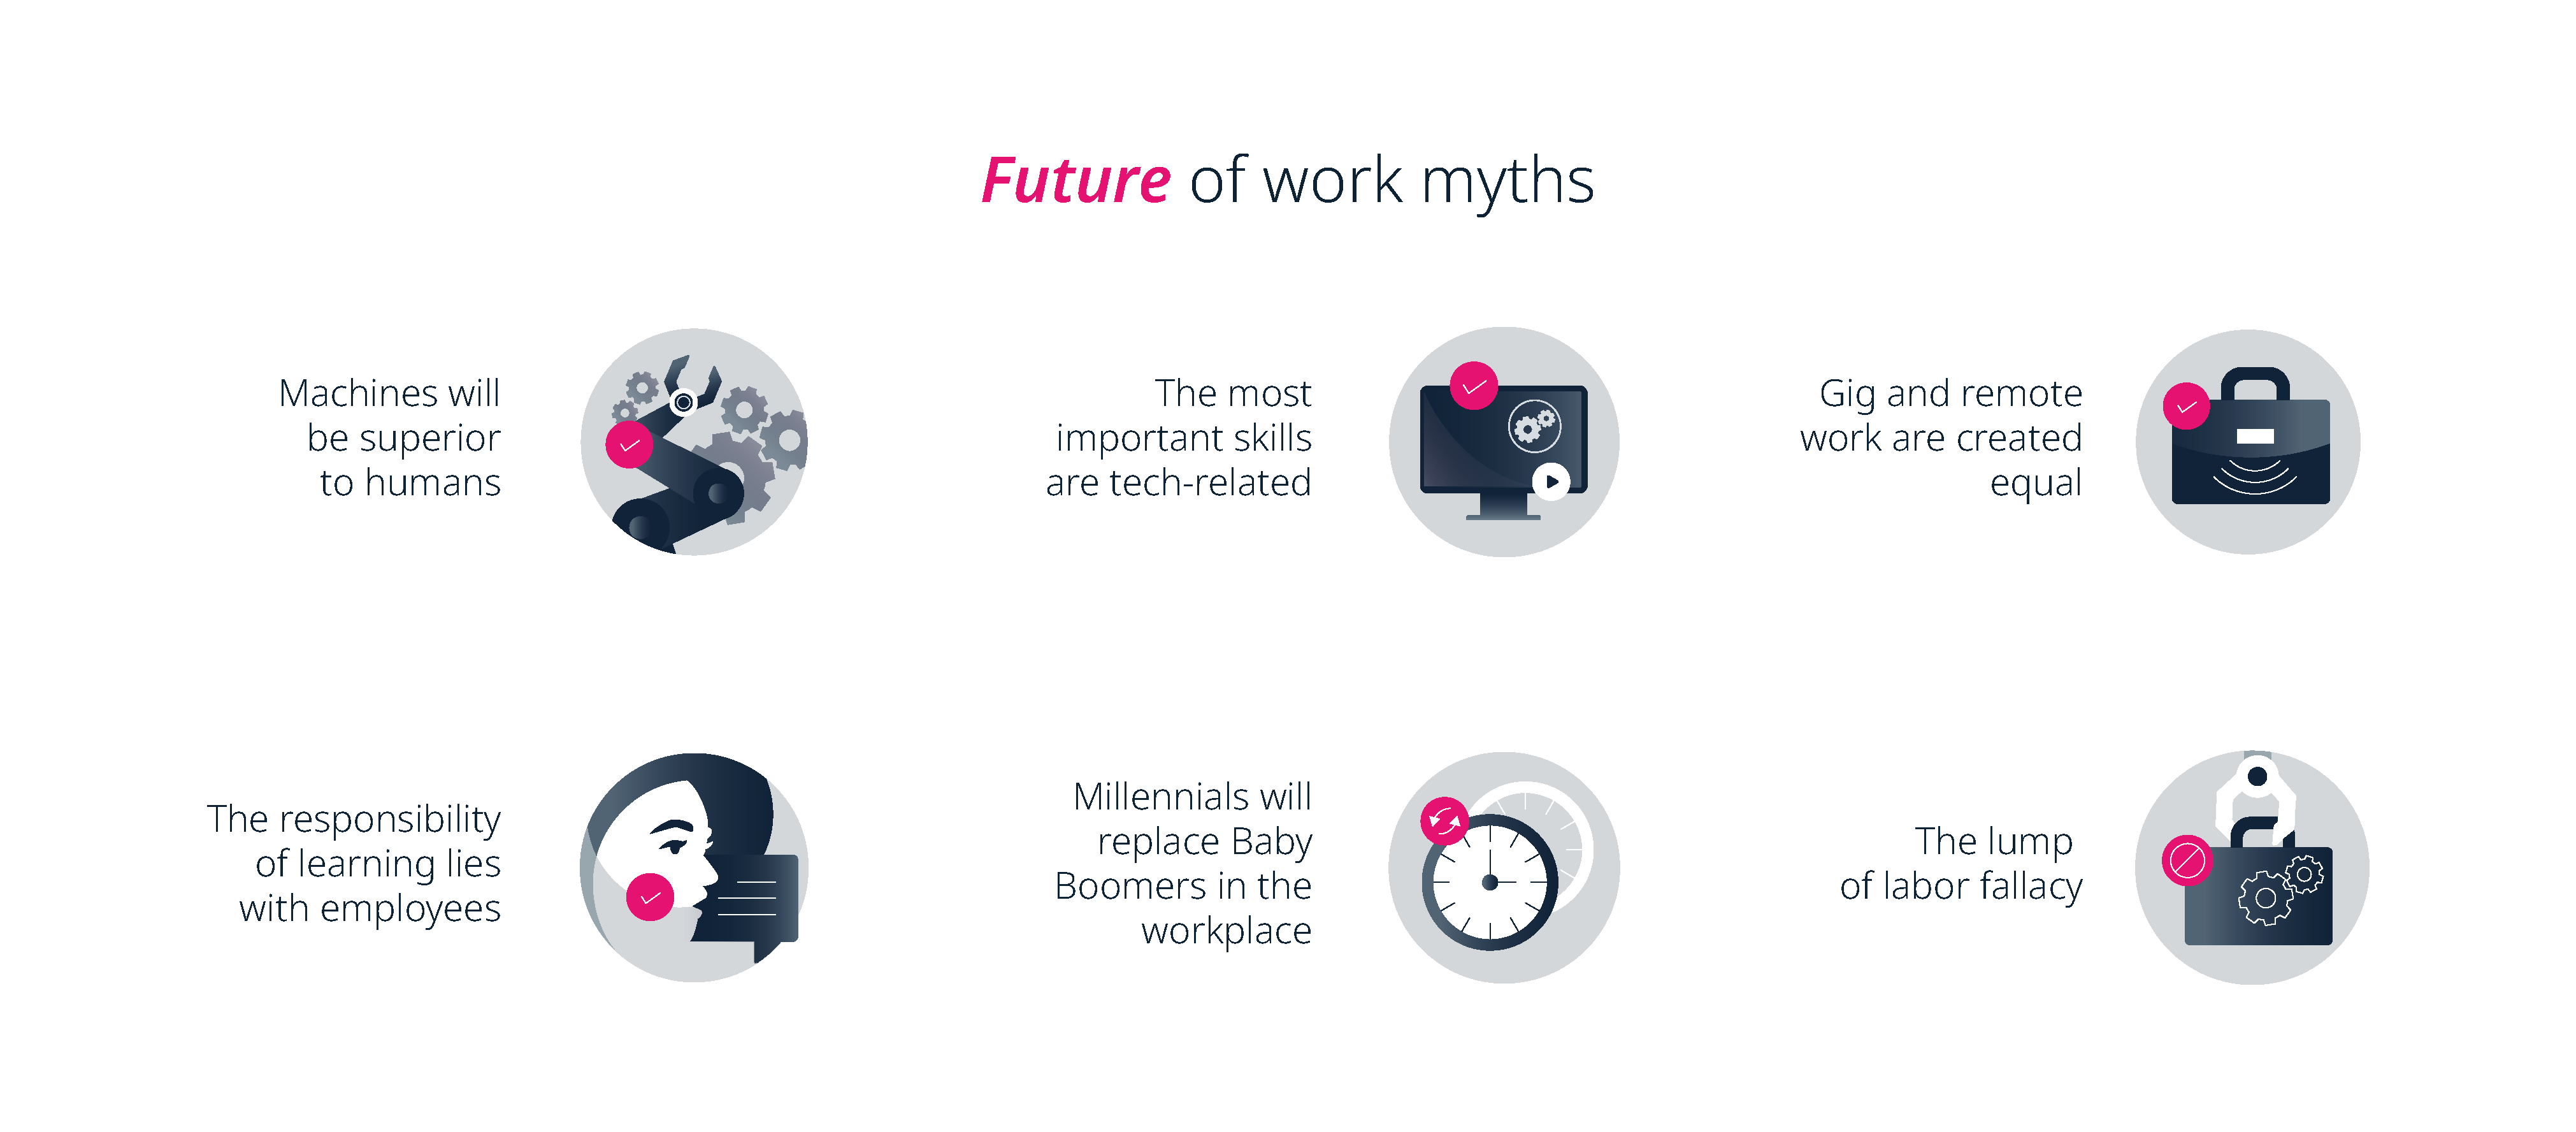 Myths about the future of work